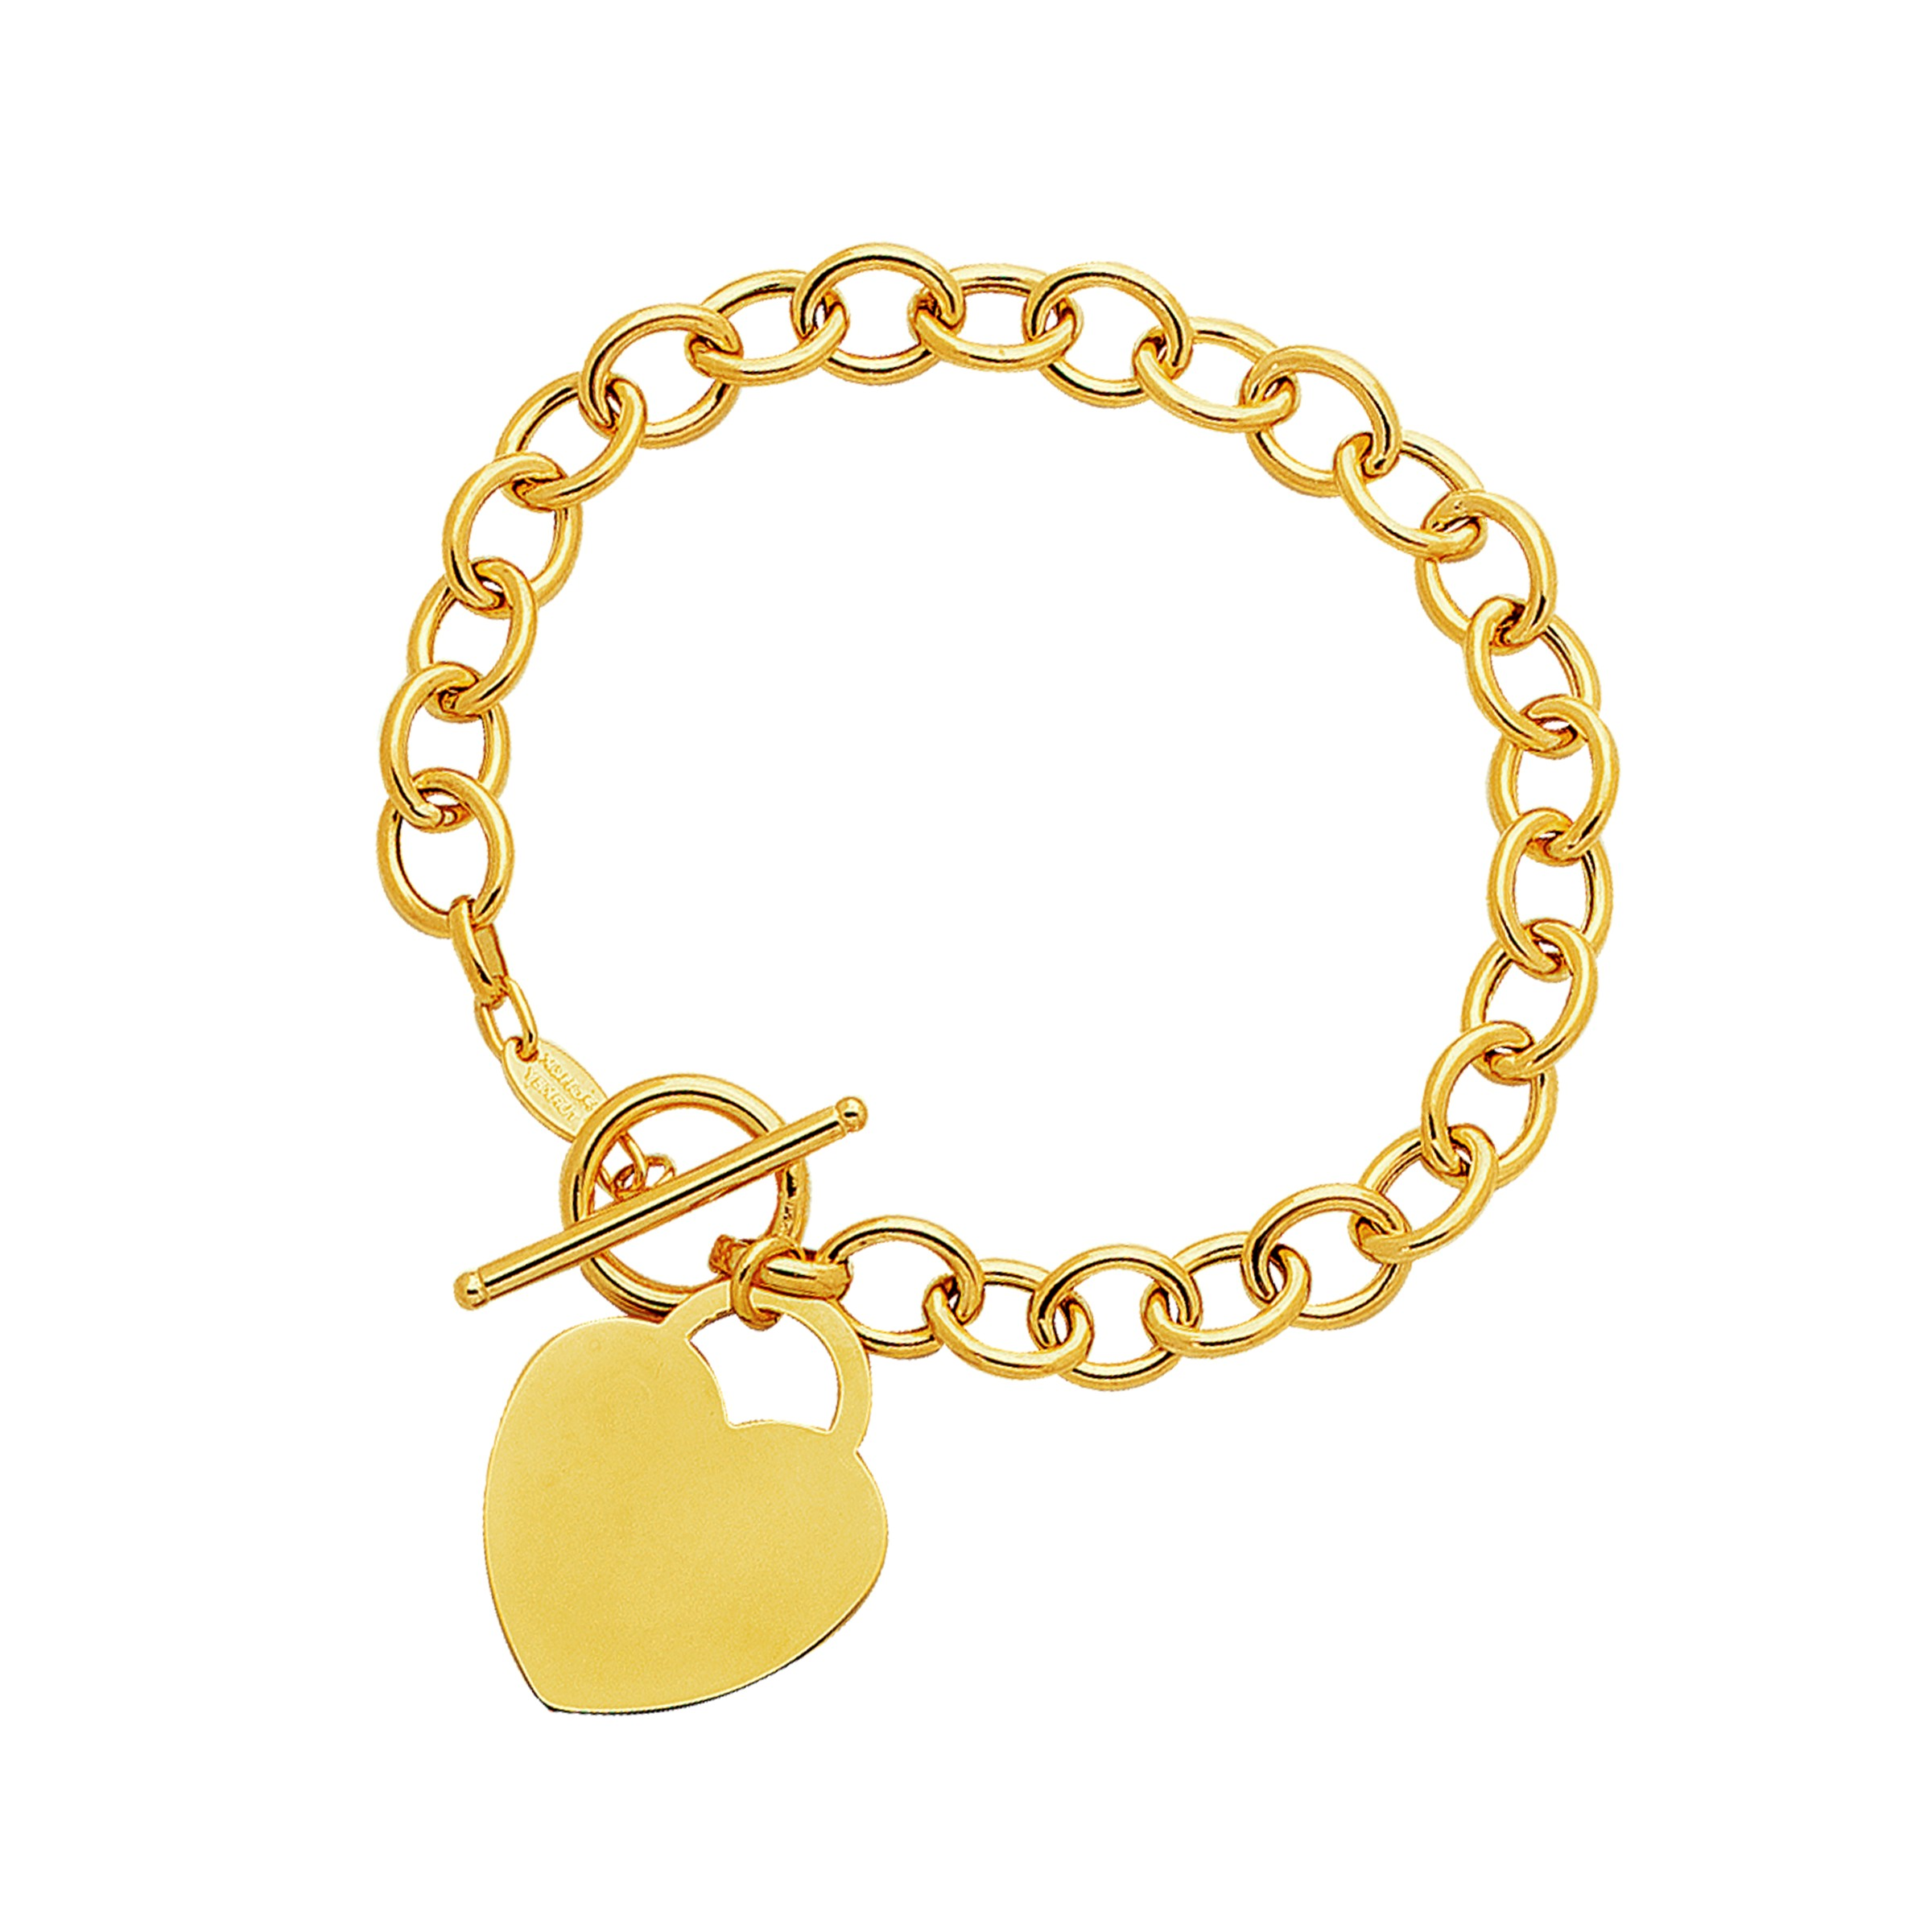 hands heart stone friday jewellery sale love bangle gold precious ottoman bracelet black semi